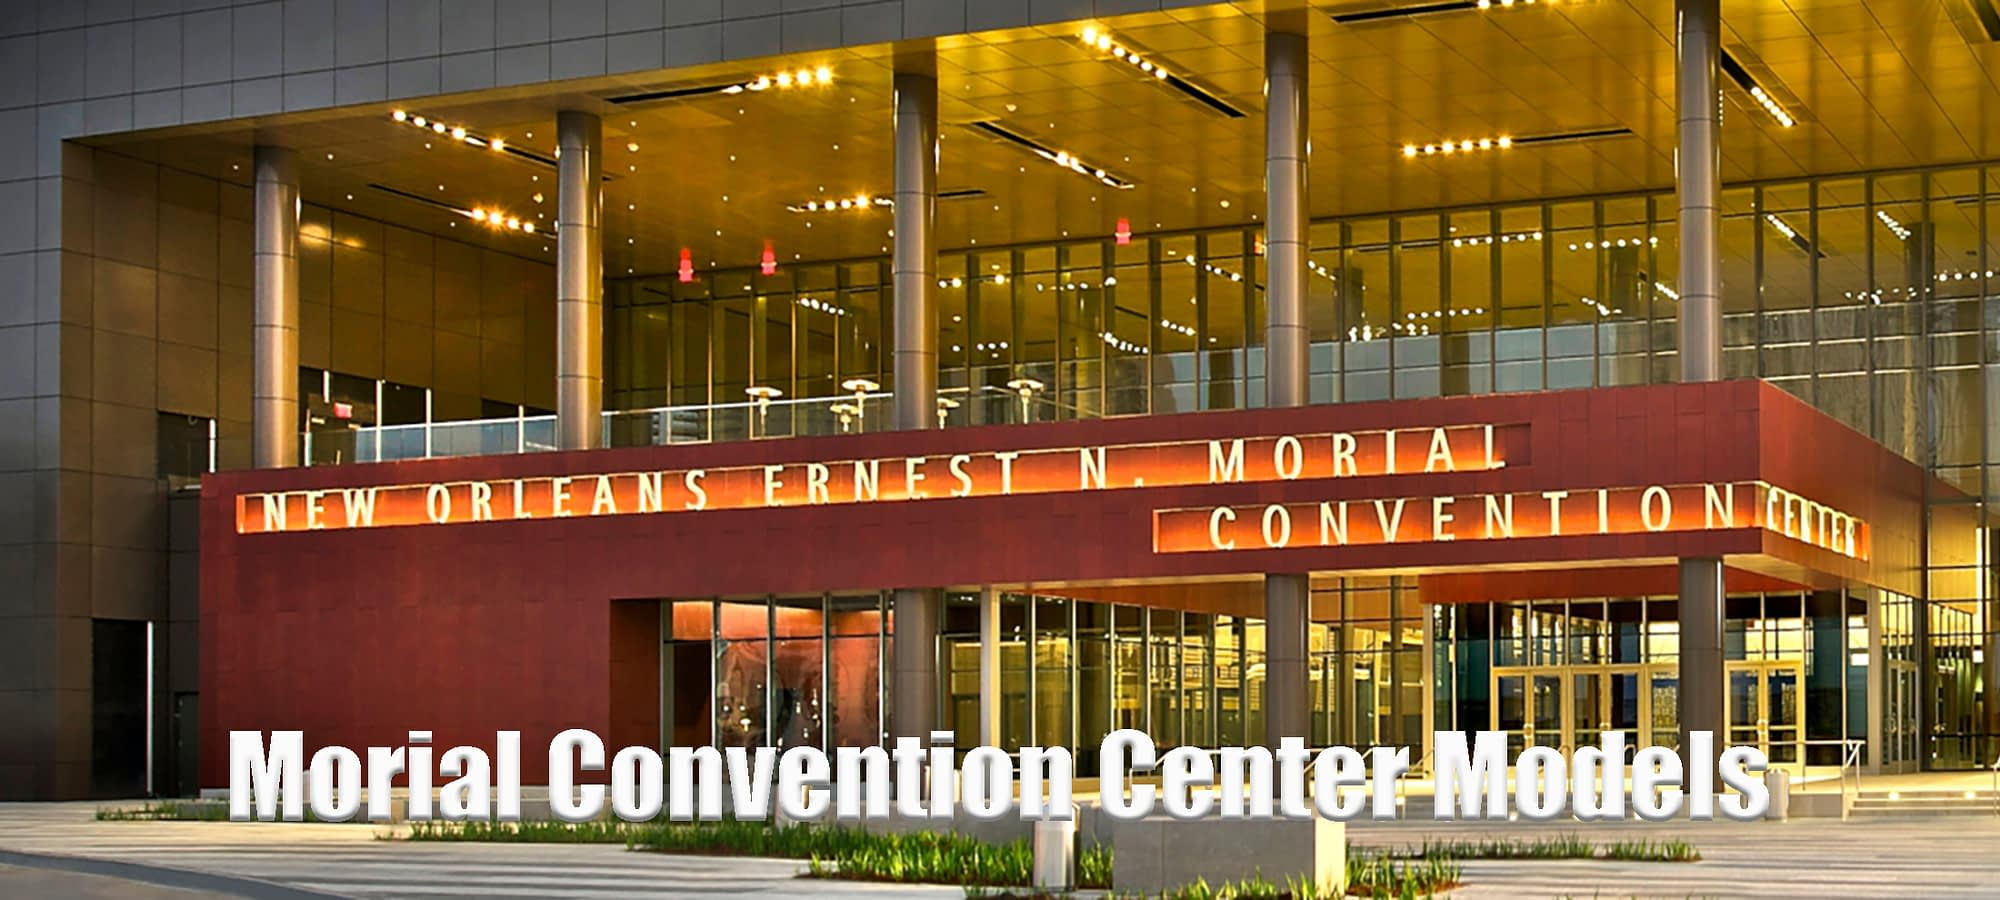 Morial Convention Center Models